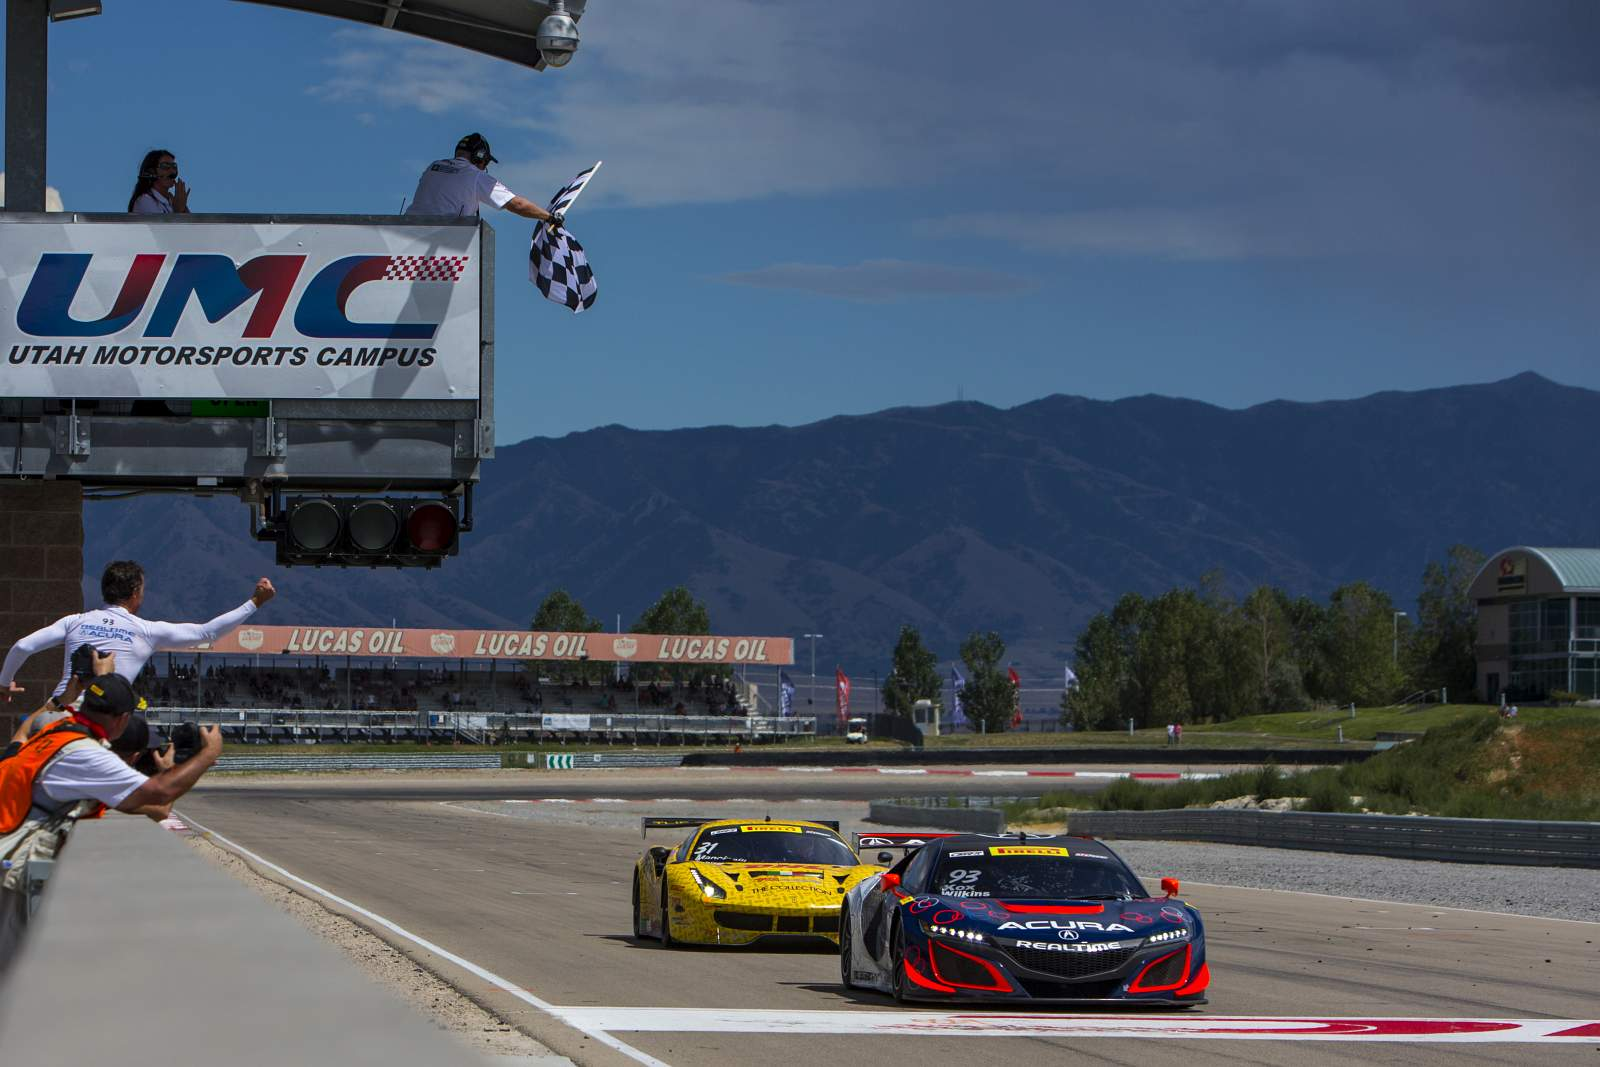 peter-kox-realtime-racing-pirelli-world-challenge-utah-motorsport-campus--162